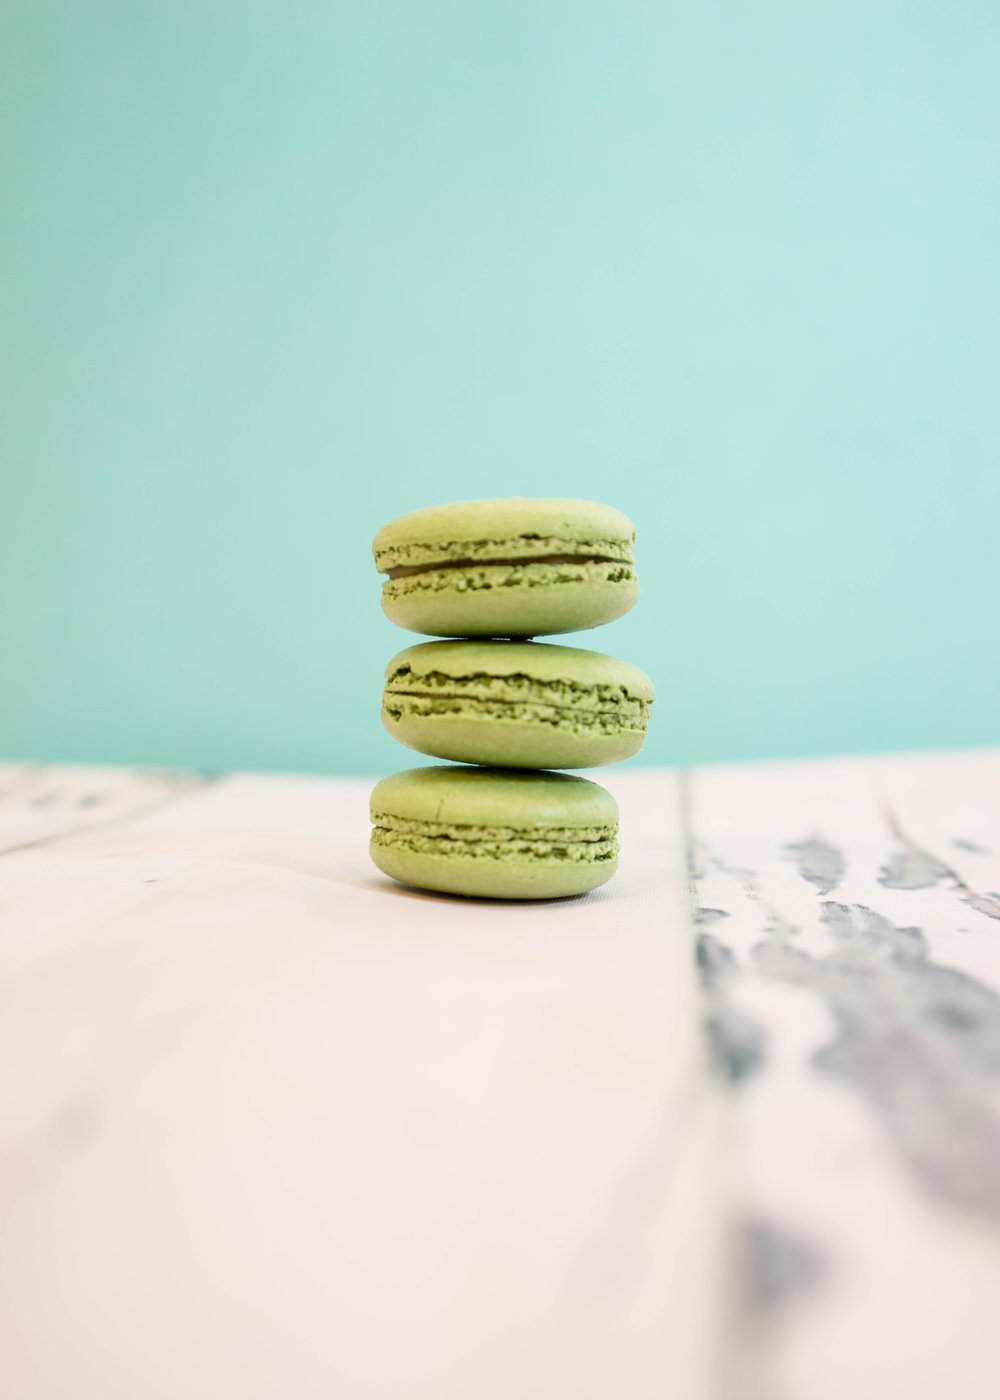 Pistachio macaron photography at Chantal Guillon Palo Alto store.